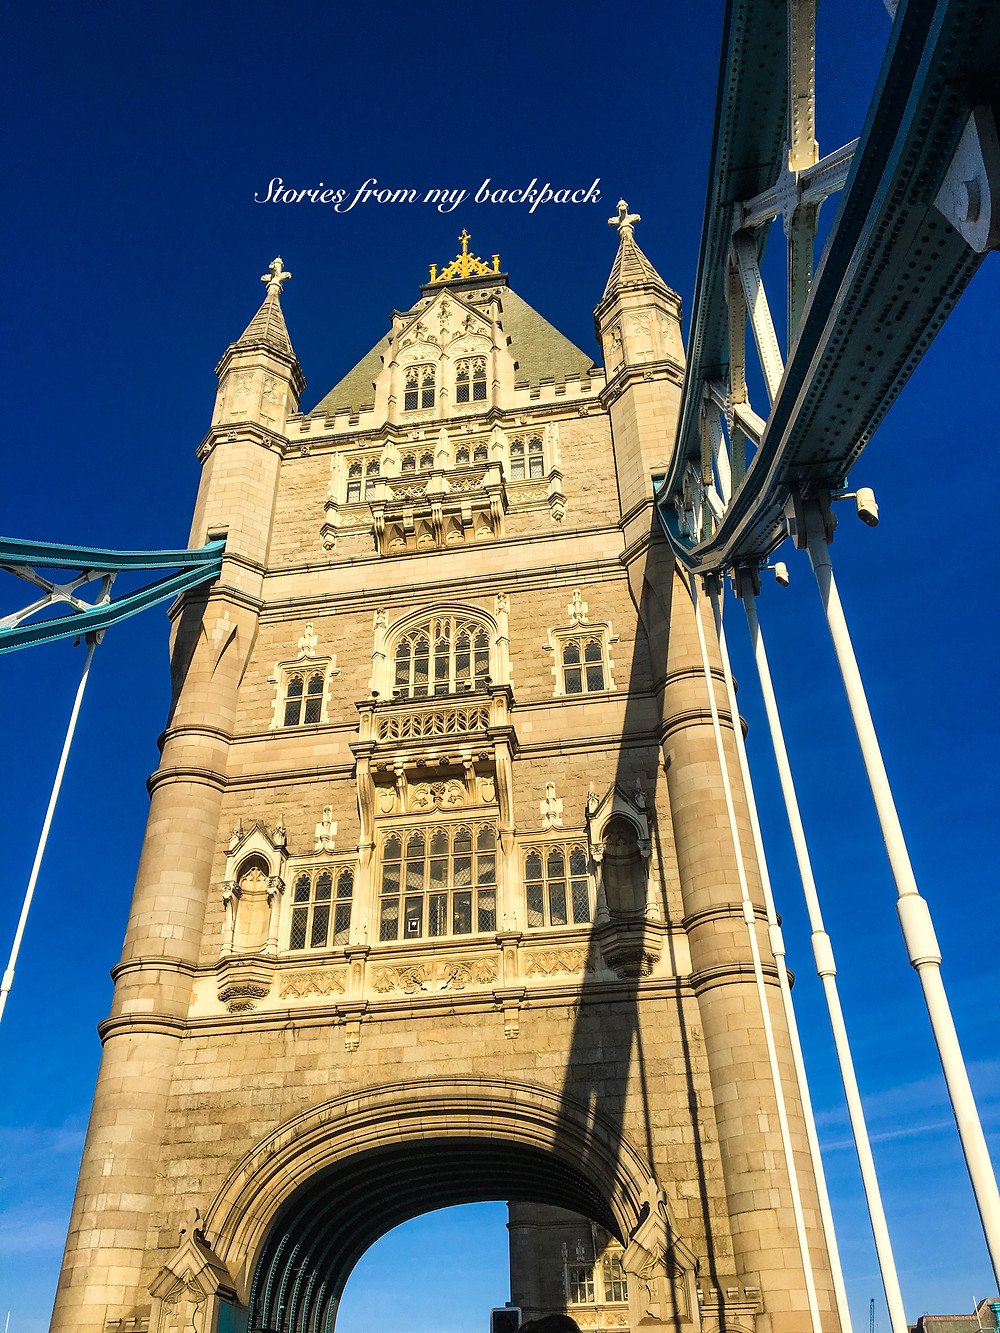 Tower Bridge, Big Ben, Palace of Westminster, Things to do in London, London on a budget, Free things to do in London